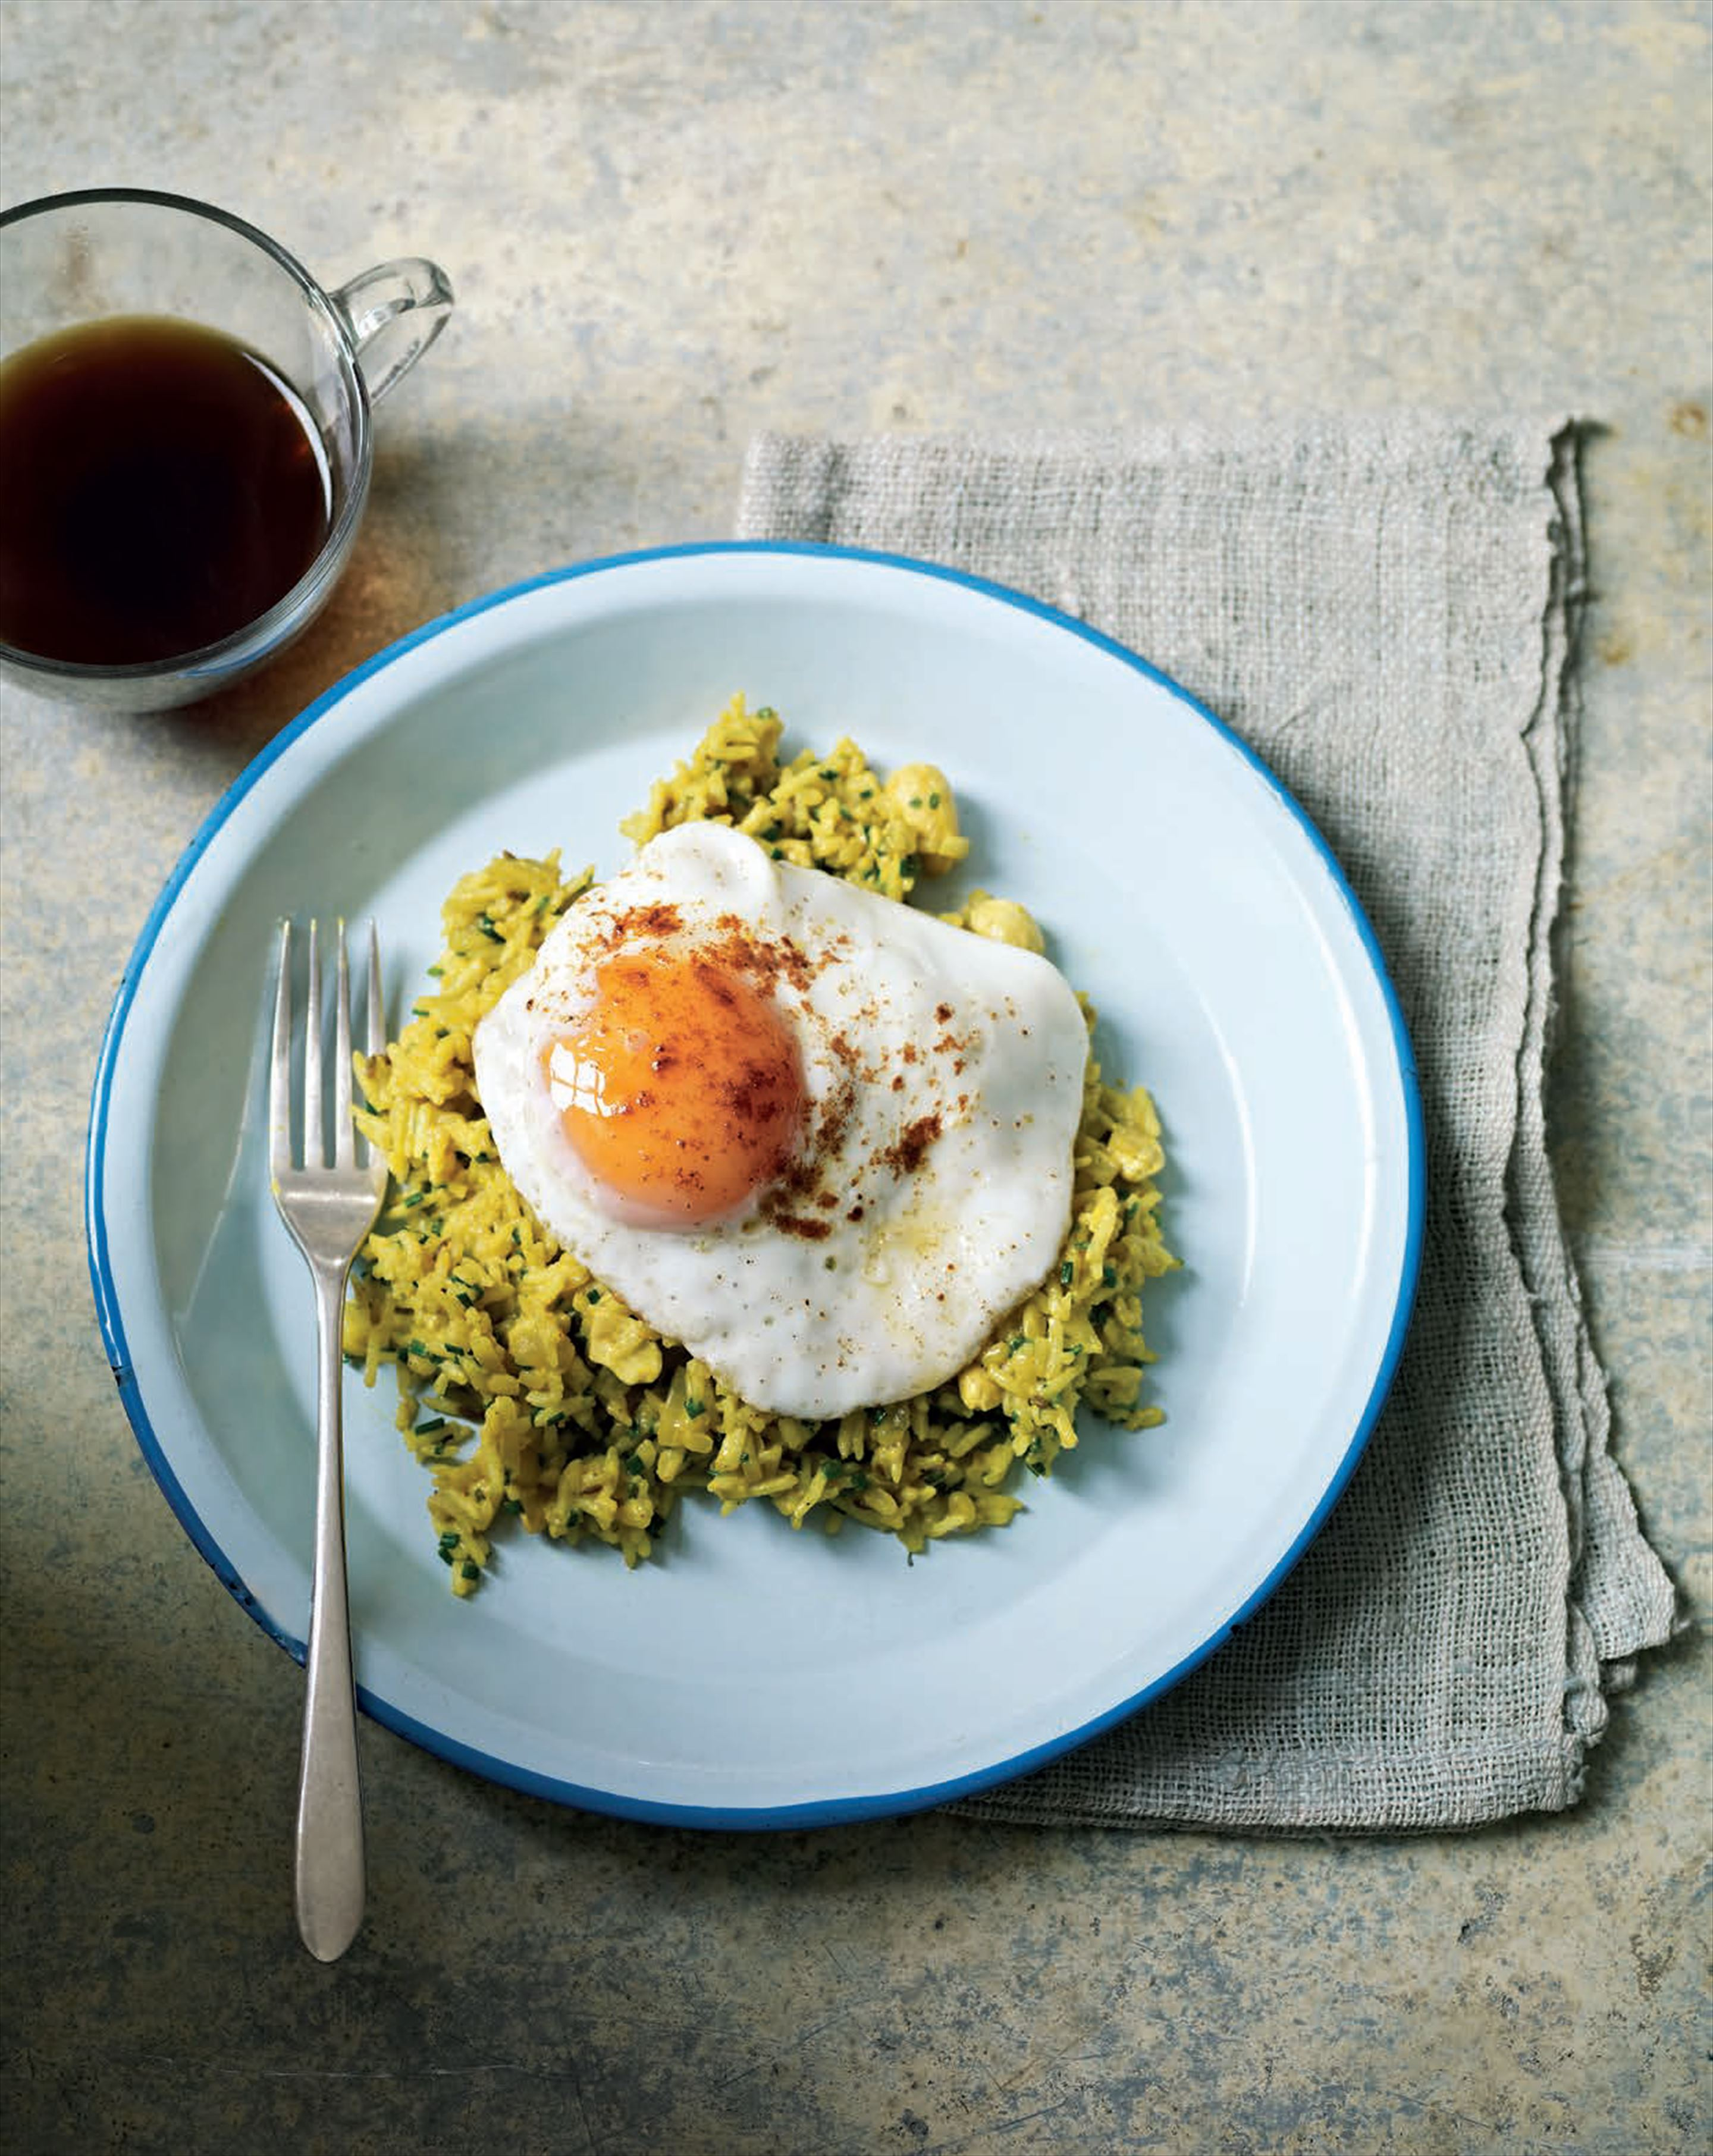 Creamy kedgeree